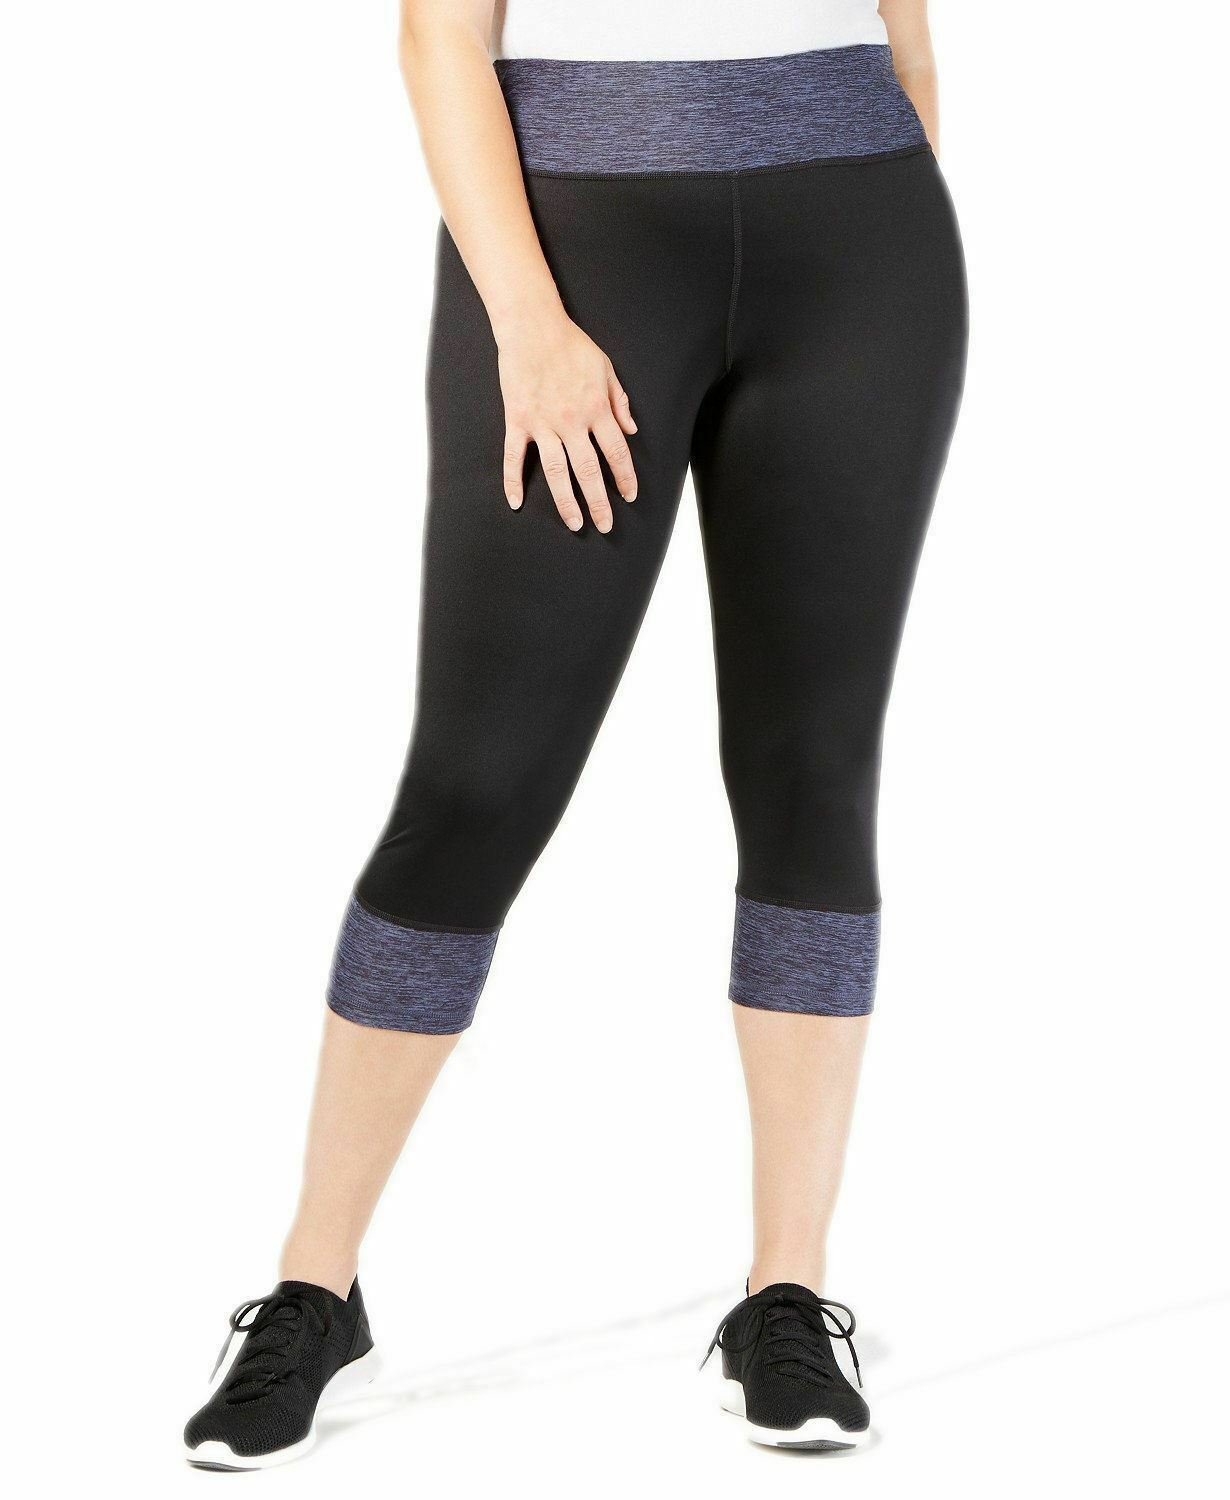 7ed0e16facf Ideology Women s Plus Size Colorblocked Cropped Leggings